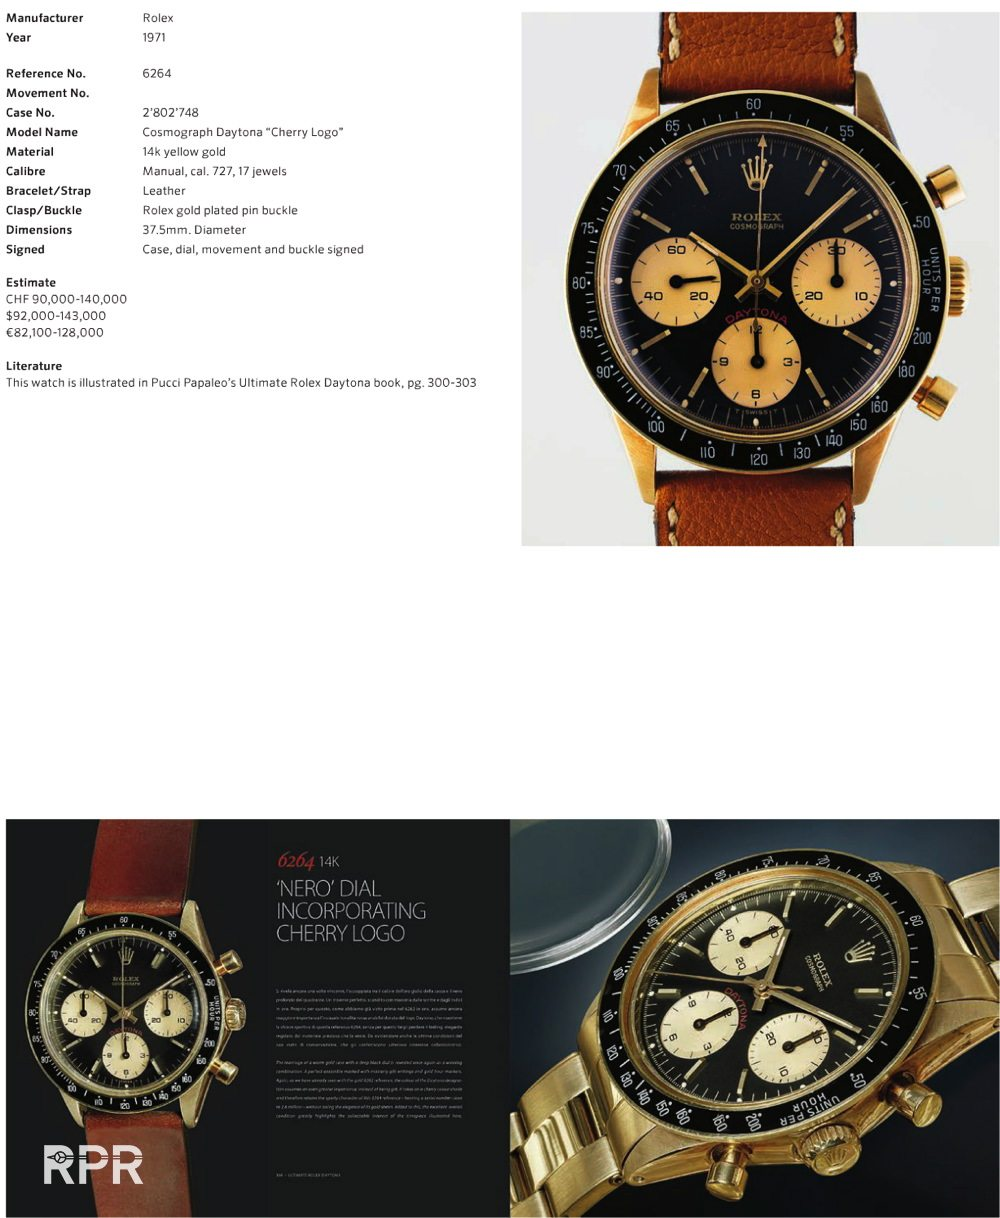 RPR_Rolex_geneva_auction_2015_41